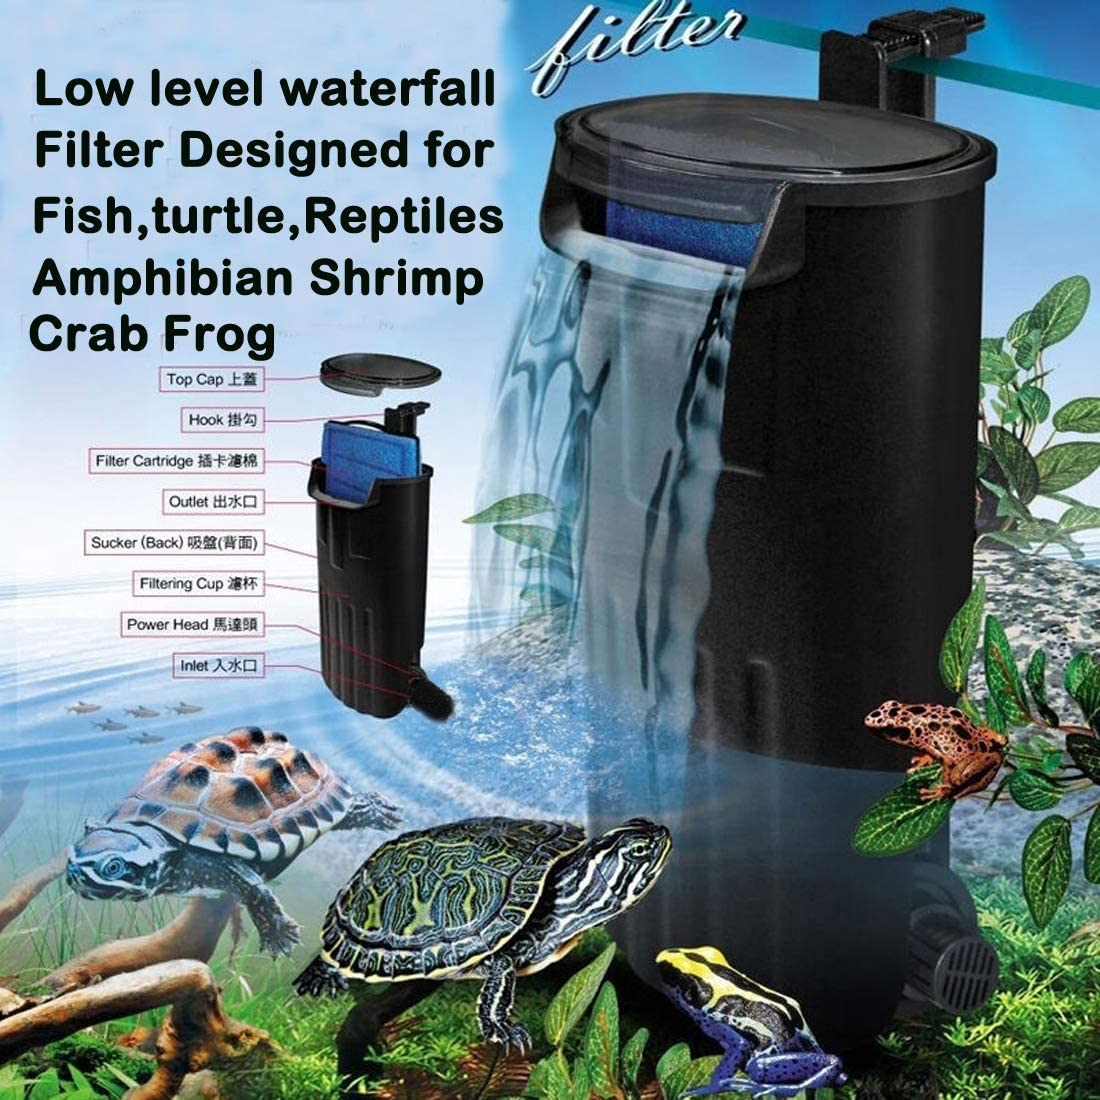 Amazon Com Aquarium Turtle Filter Waterfall Flow Water Clean Pump Bio Filtration For Reptiles Tank Low Level Waterfall Filter For Small Fish Tank Turtle Tank Shrimp Amphibian Frog Crab Pet Supplies